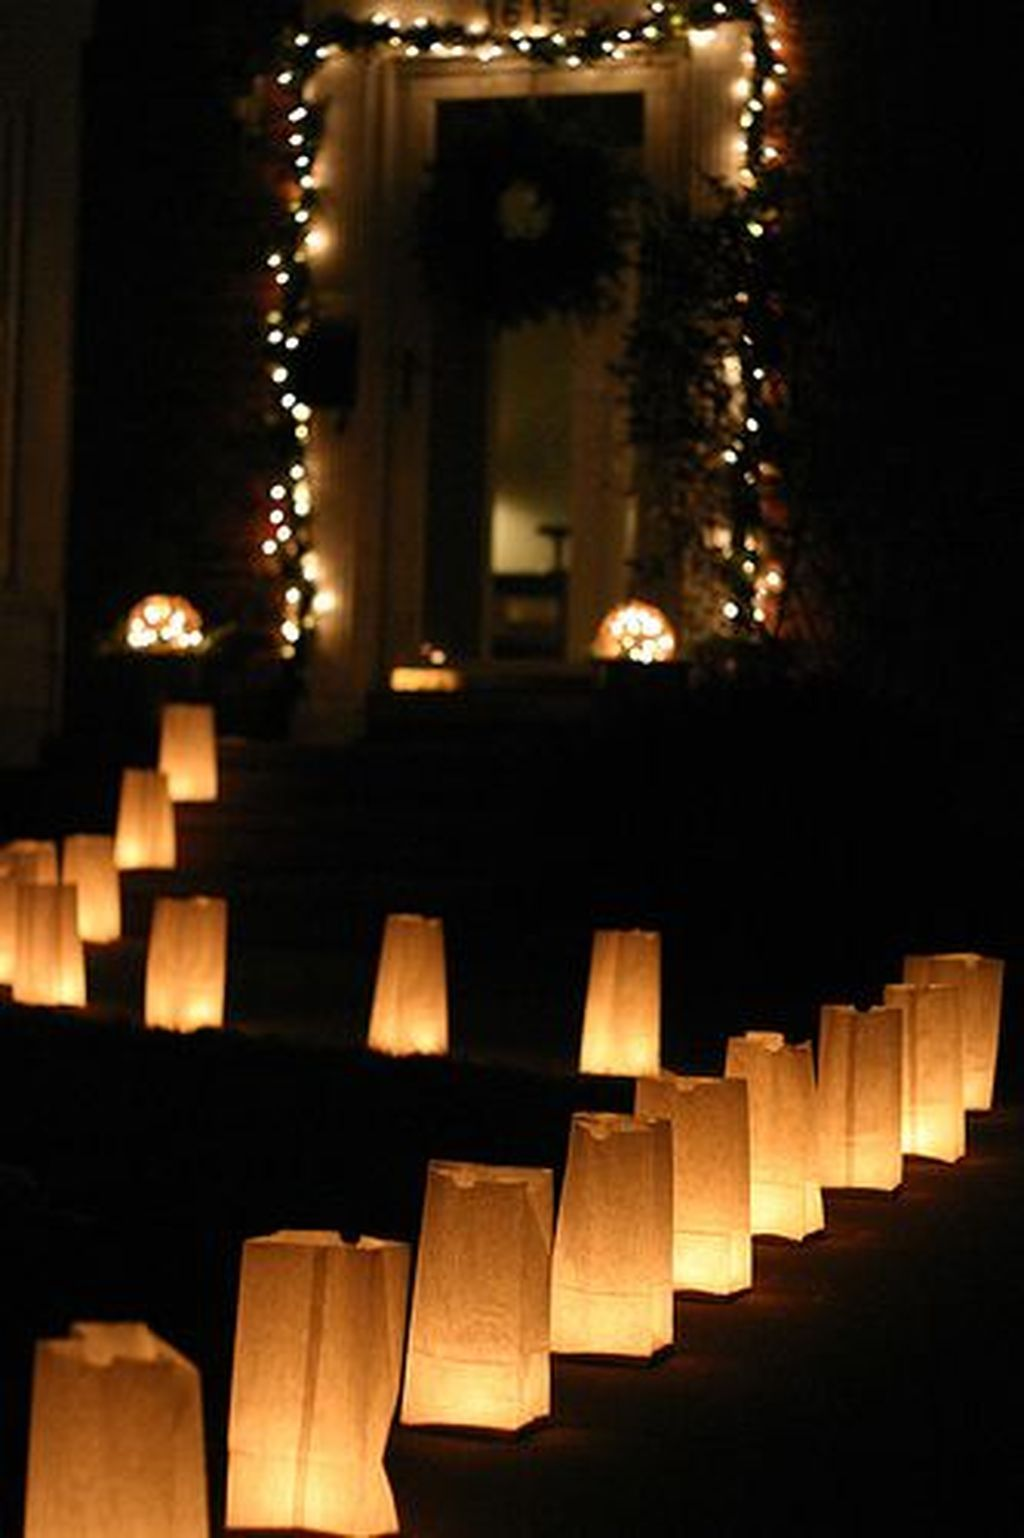 30 Unforgetable Outdoor New Years Eve Party Decor Ideas You Can Try At Home Trenduhome New Year S Eve Party Themes New Years Eve Decorations News Years Eve Party Ideas